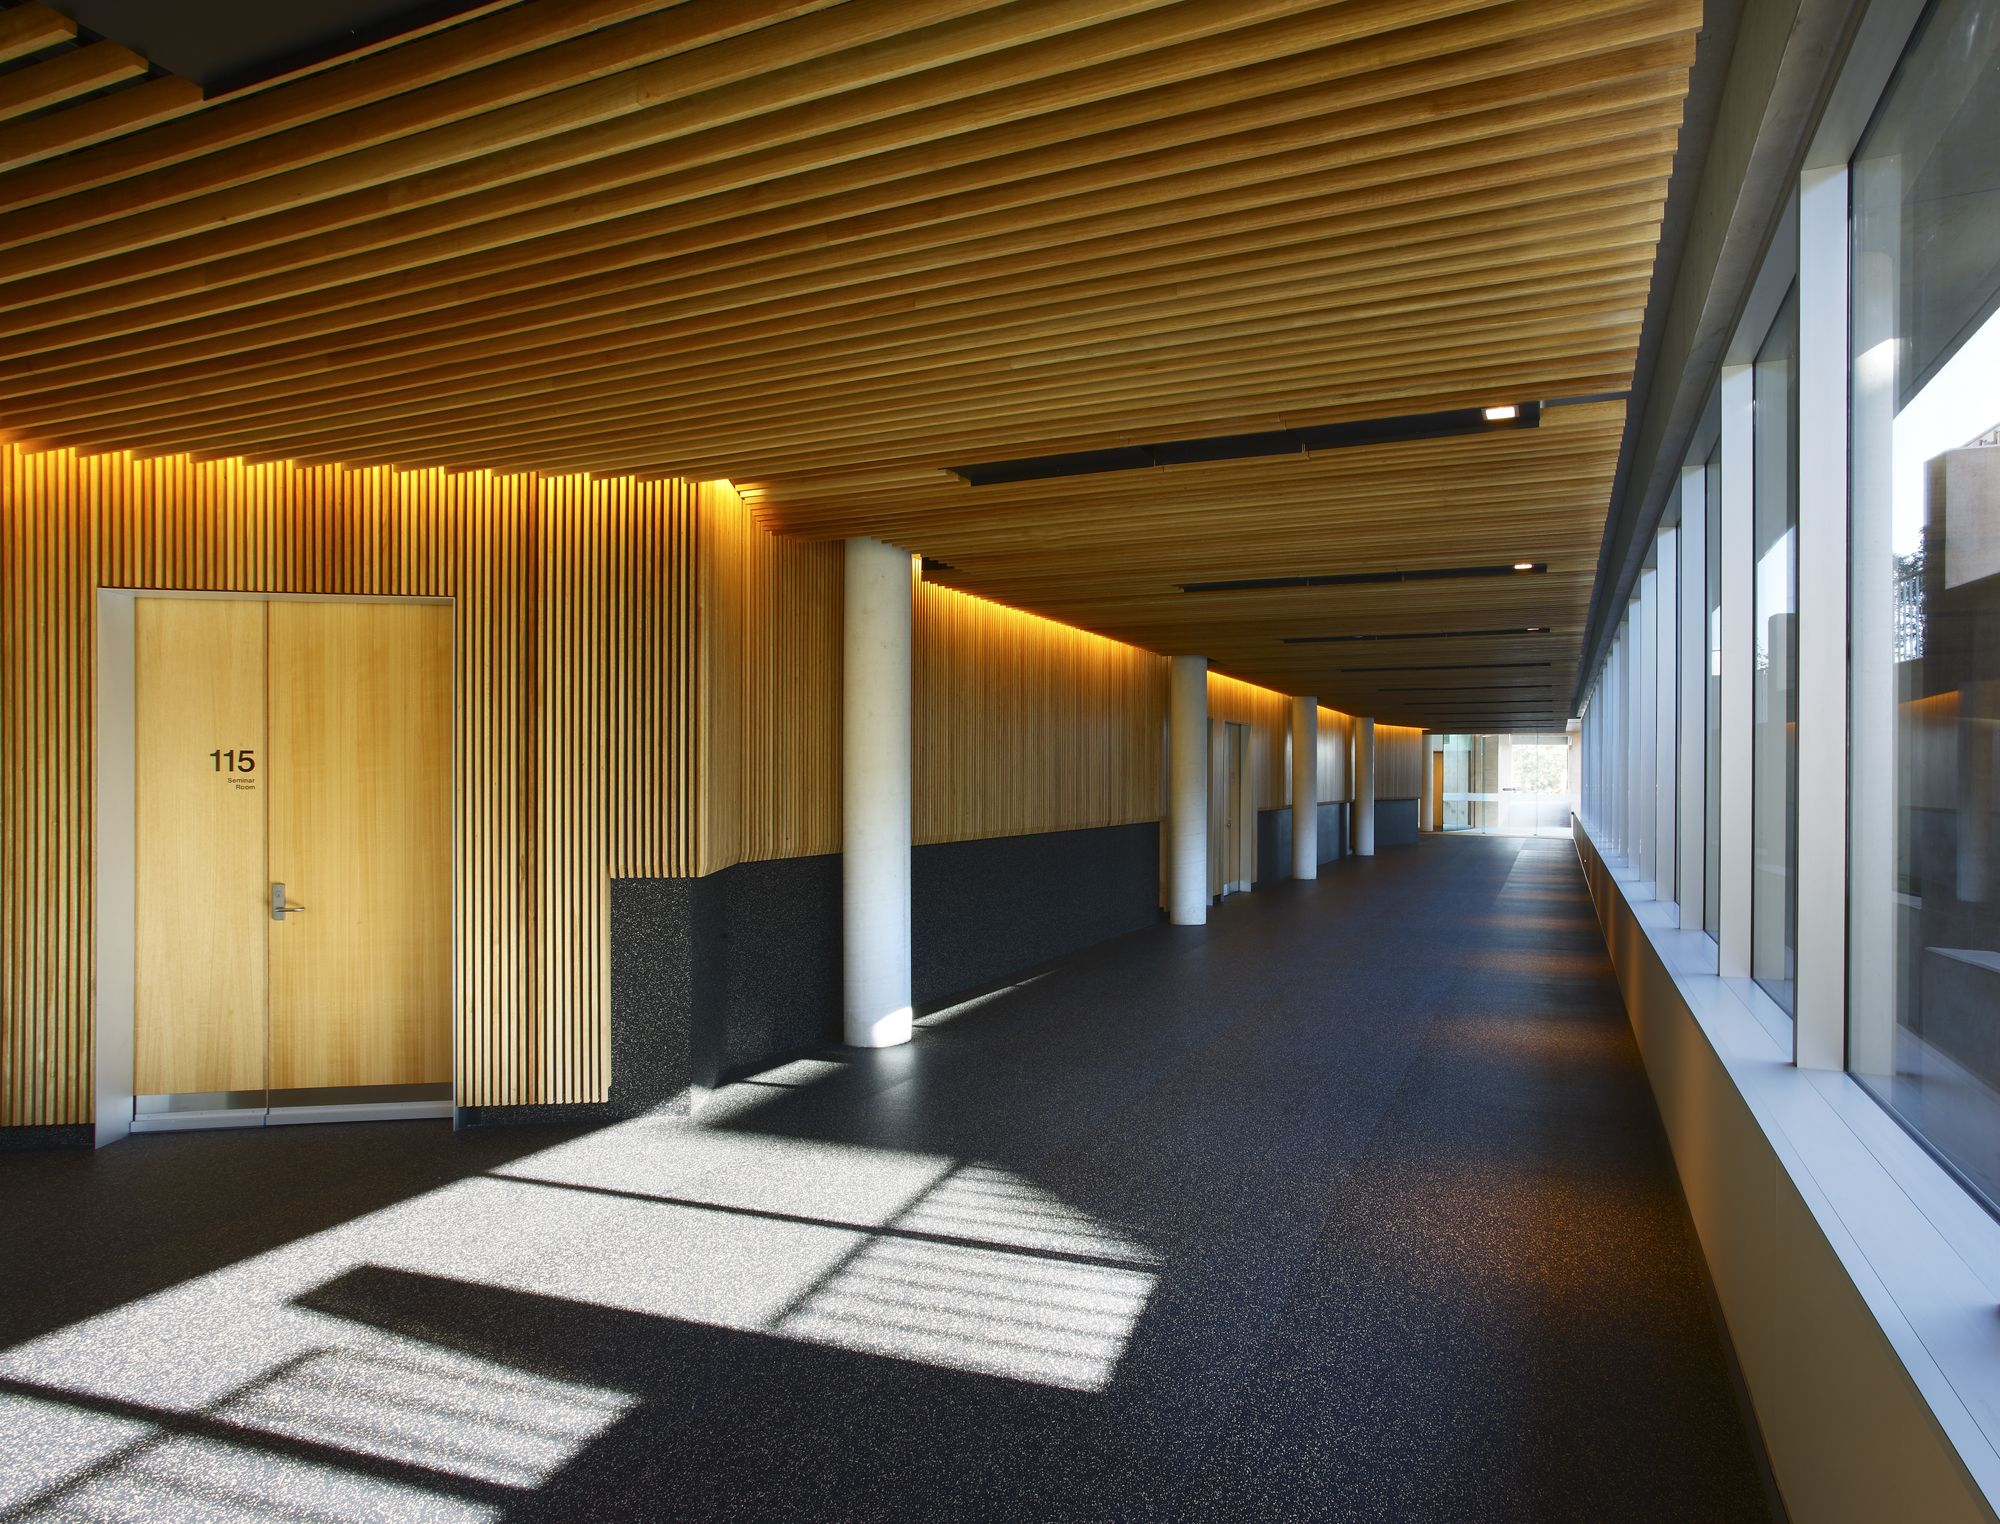 Sir Llew Edwards Building, University Of Queensland (Uq), Brisbane -